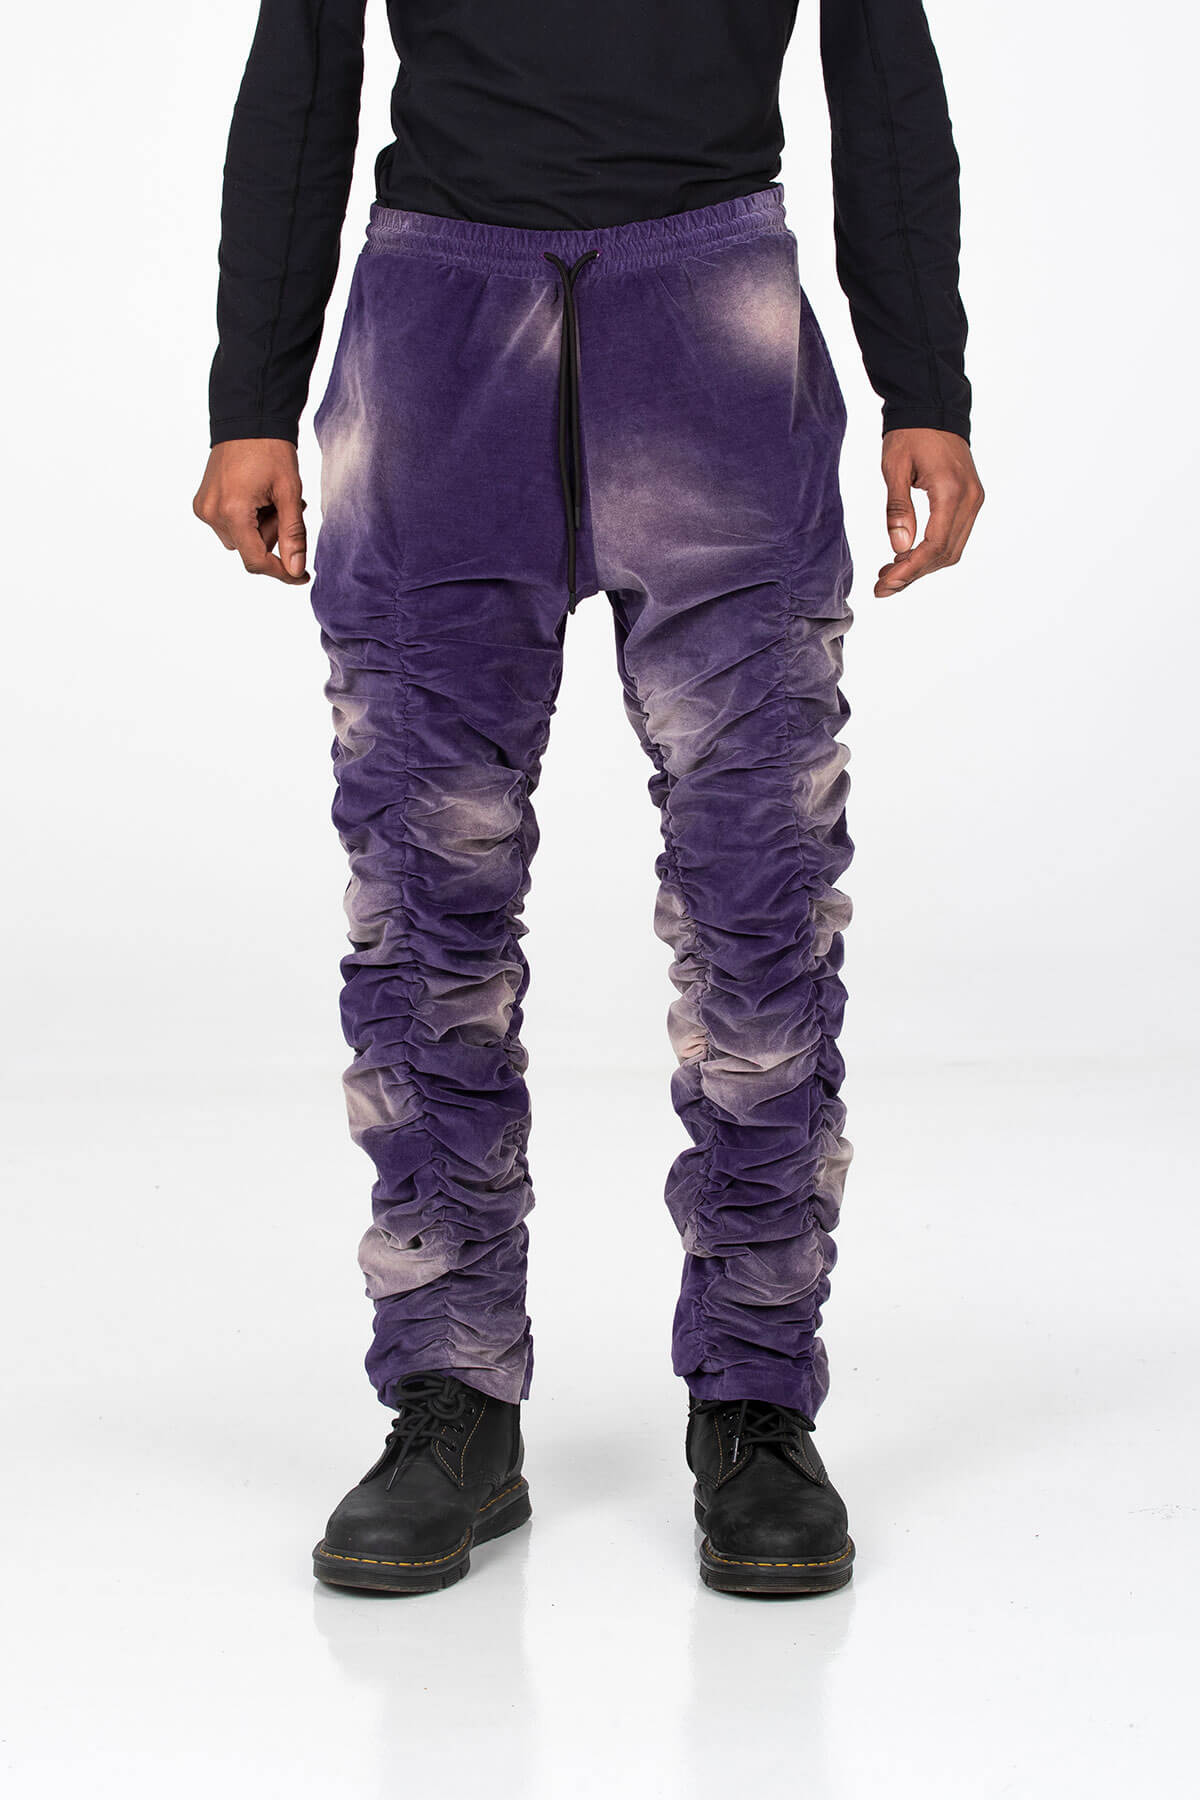 PURPLE VELVET STACK PANTS - BOTTOM - A/W 2020 - MJB